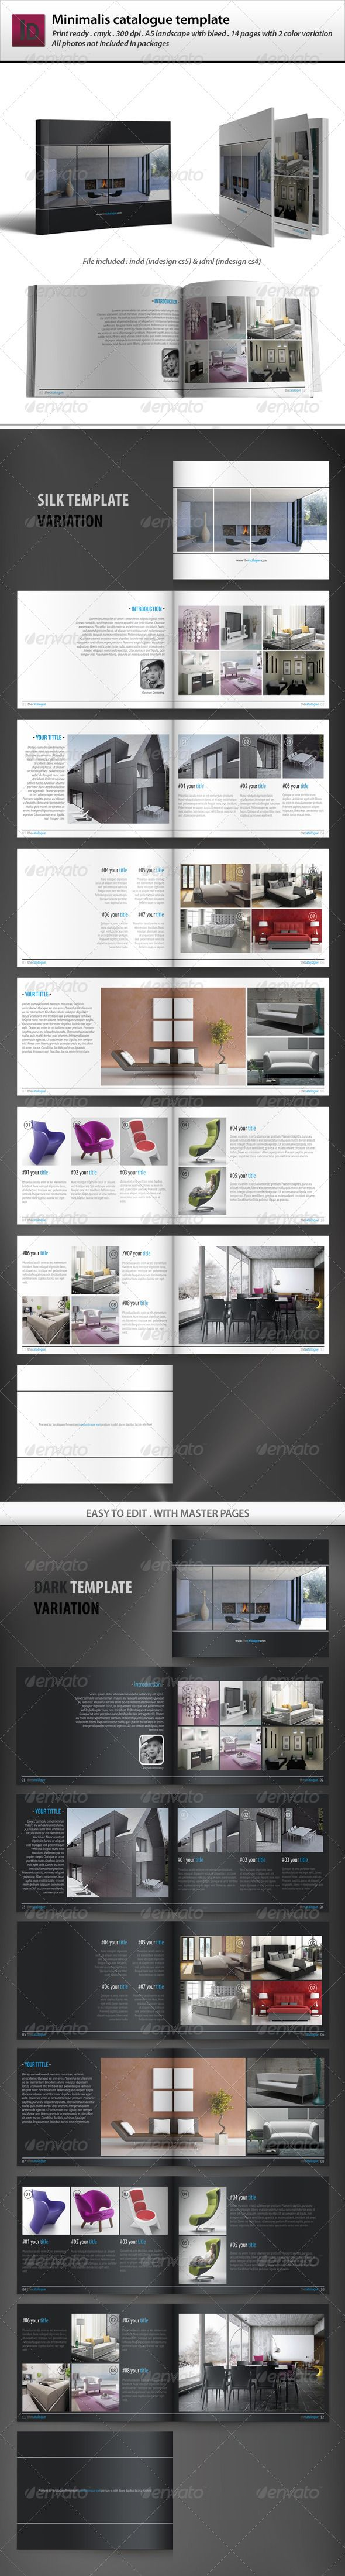 Minimalis Catalogue Template - Catalogs Brochures